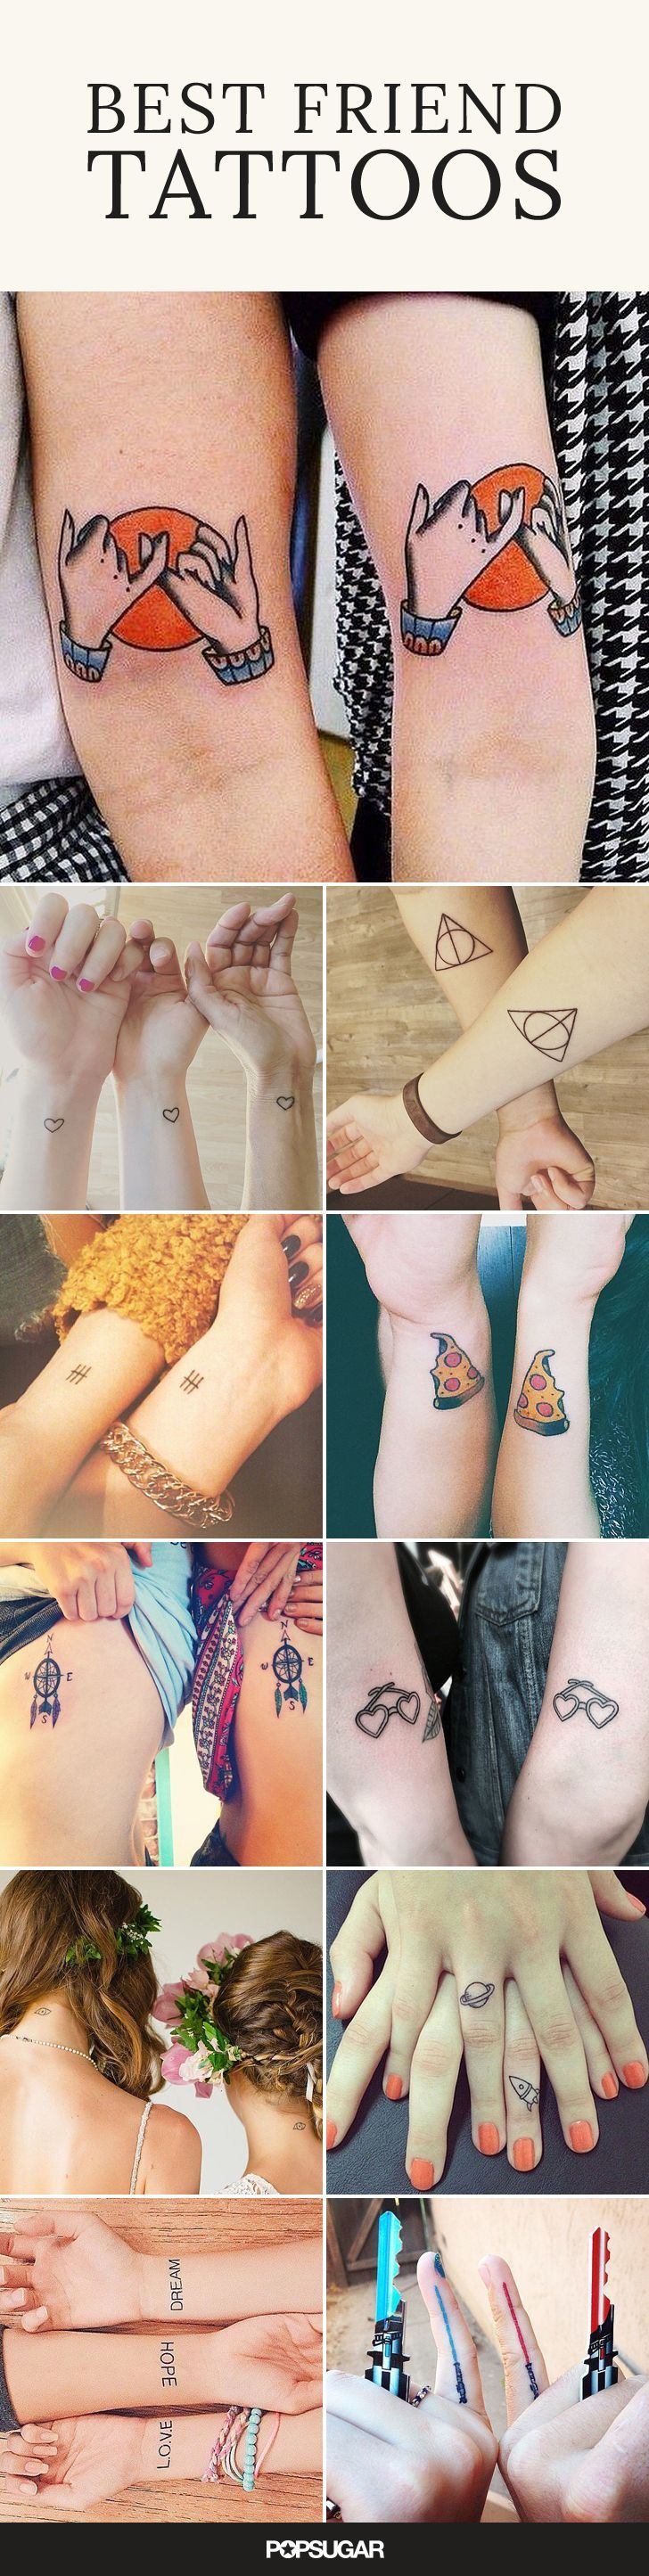 If your best friend is a real BFF, she'll make it permanent and get inked with you. After all, your friendship never happened unless you get a tattoo and Instagram it. We scoured the web to find the best tattoos between friends for you to use as an inspirational guide.코리아카지노→ DADS5.COM ←로얄카지노코리아카지노로얄카지노코리아카지노로얄카지노코리아카지노로얄카지노코리아카지노로얄카지노코리아카지노로얄카지노코리아카지노로얄카지노코리아카지노로얄카지노코리아카지노로얄카지노코리아카지노로얄카지노코리아카지노로얄카지노코리아카지노로얄카지노코리아카지노로얄카지노코리아카지노로얄카지노코리아카지노로얄카지노코리아카지노로얄카지노코리아카지노로얄카지노코리아카지노로얄카지노